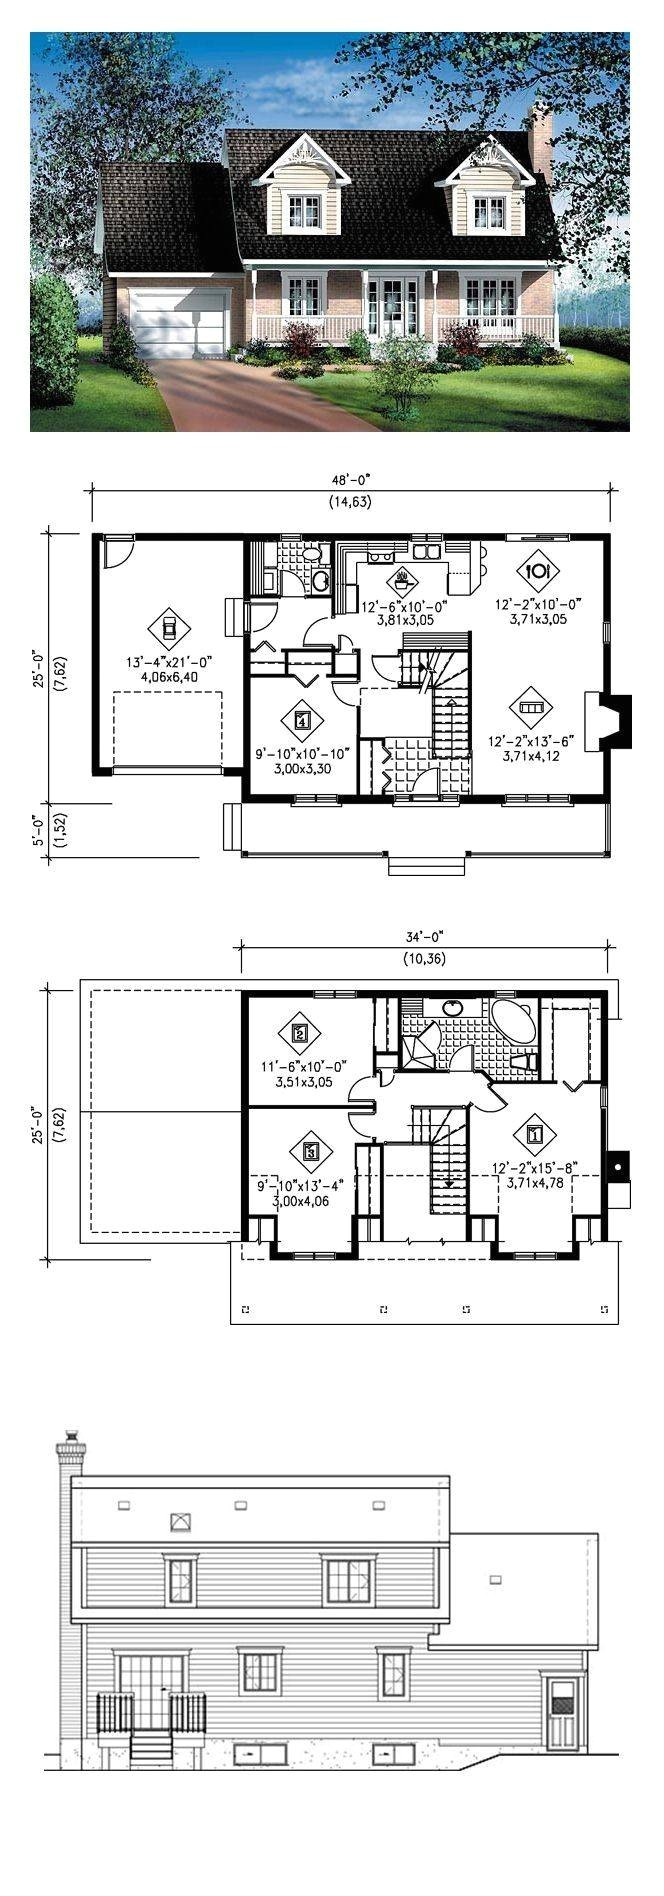 dream home plans lovely simple e story house plans luxury 2178 best dream home tiny